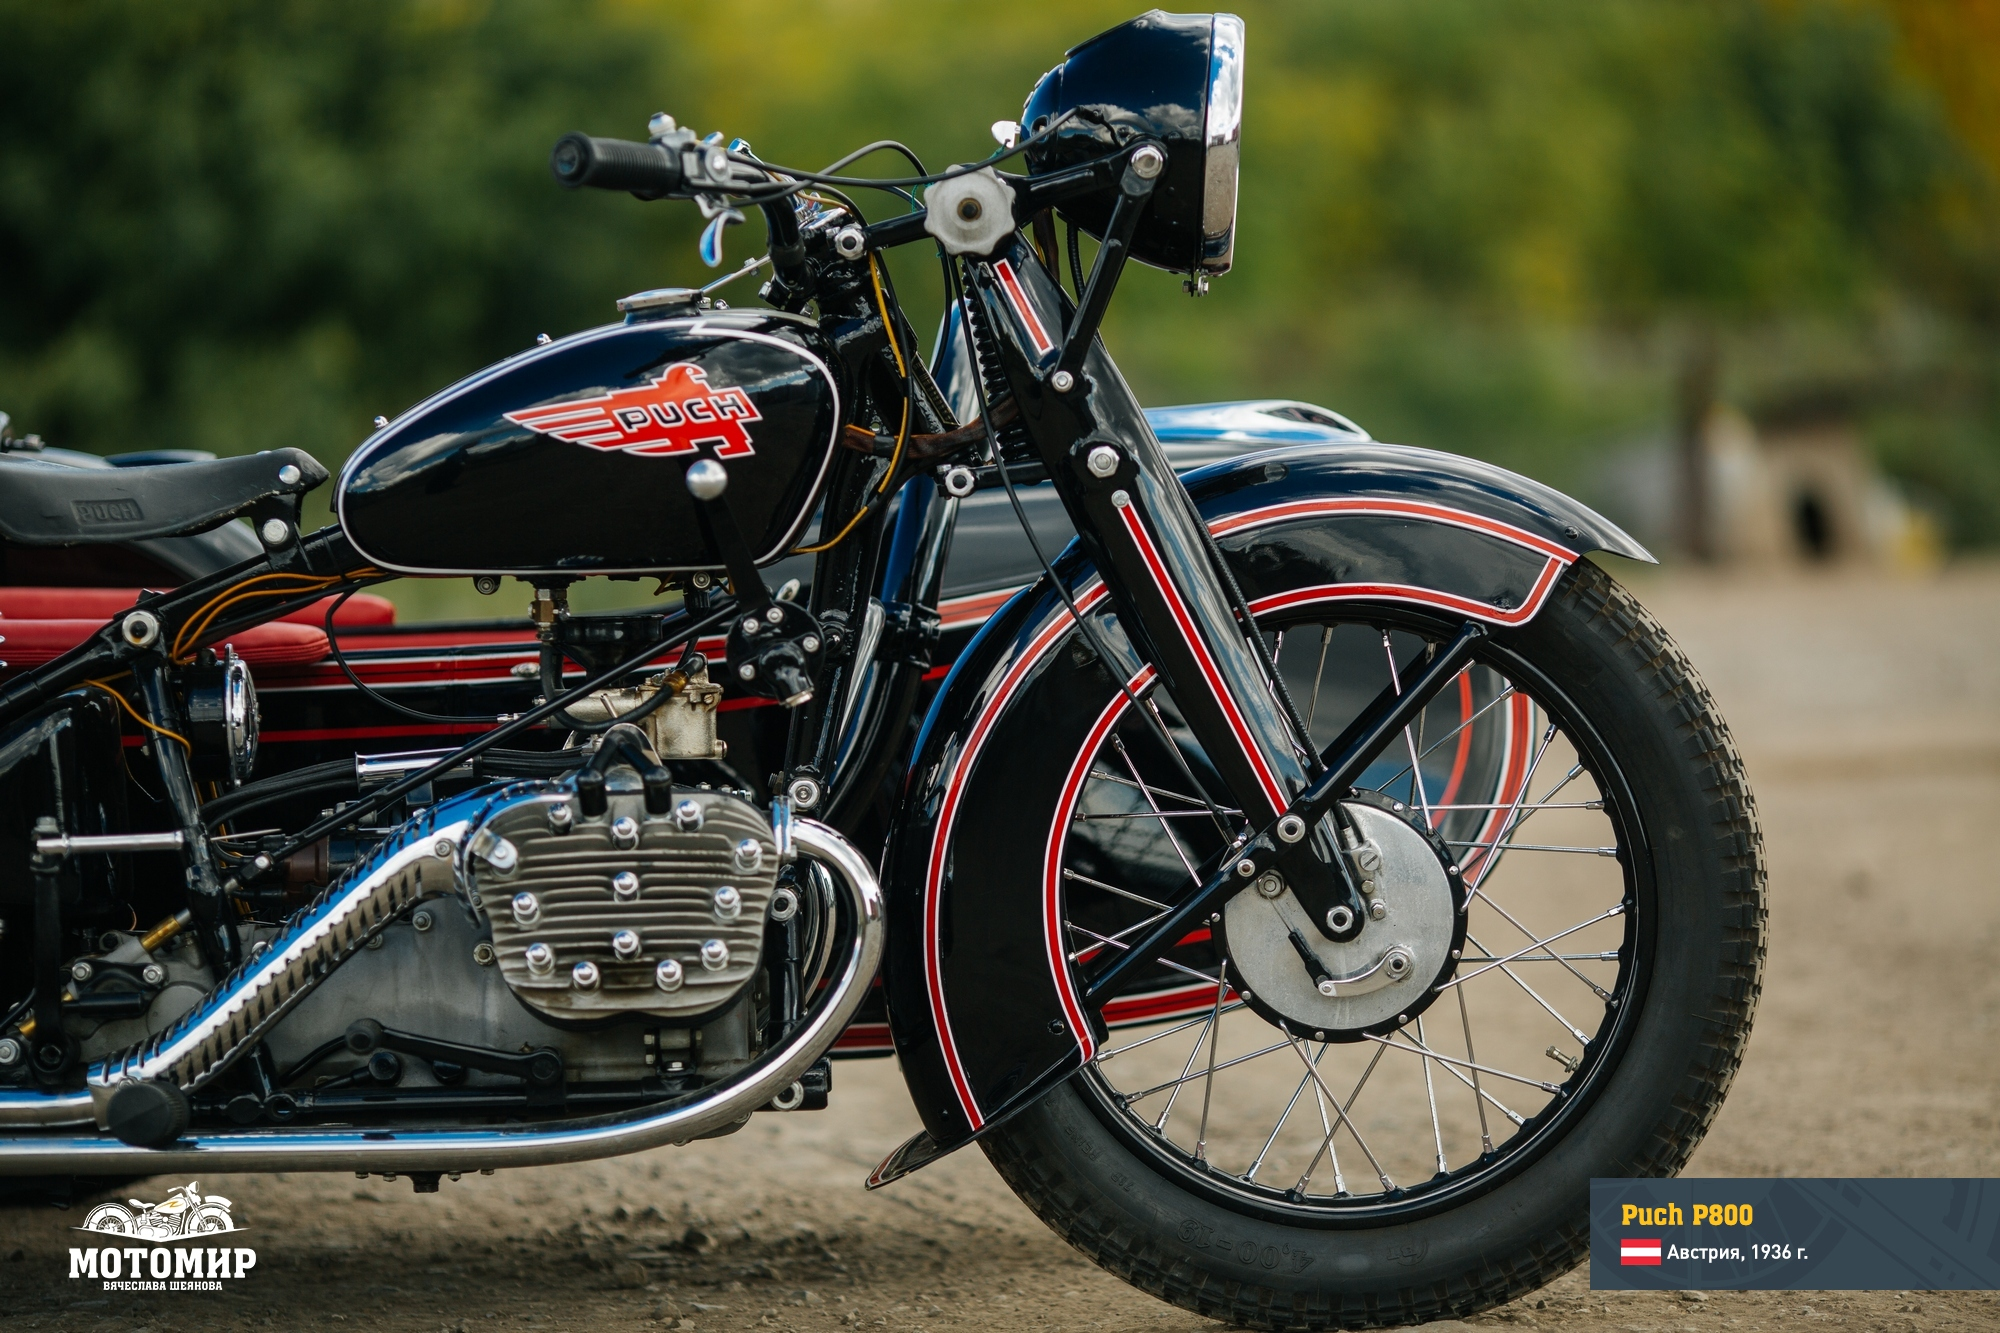 puch-p800-201510-web-12